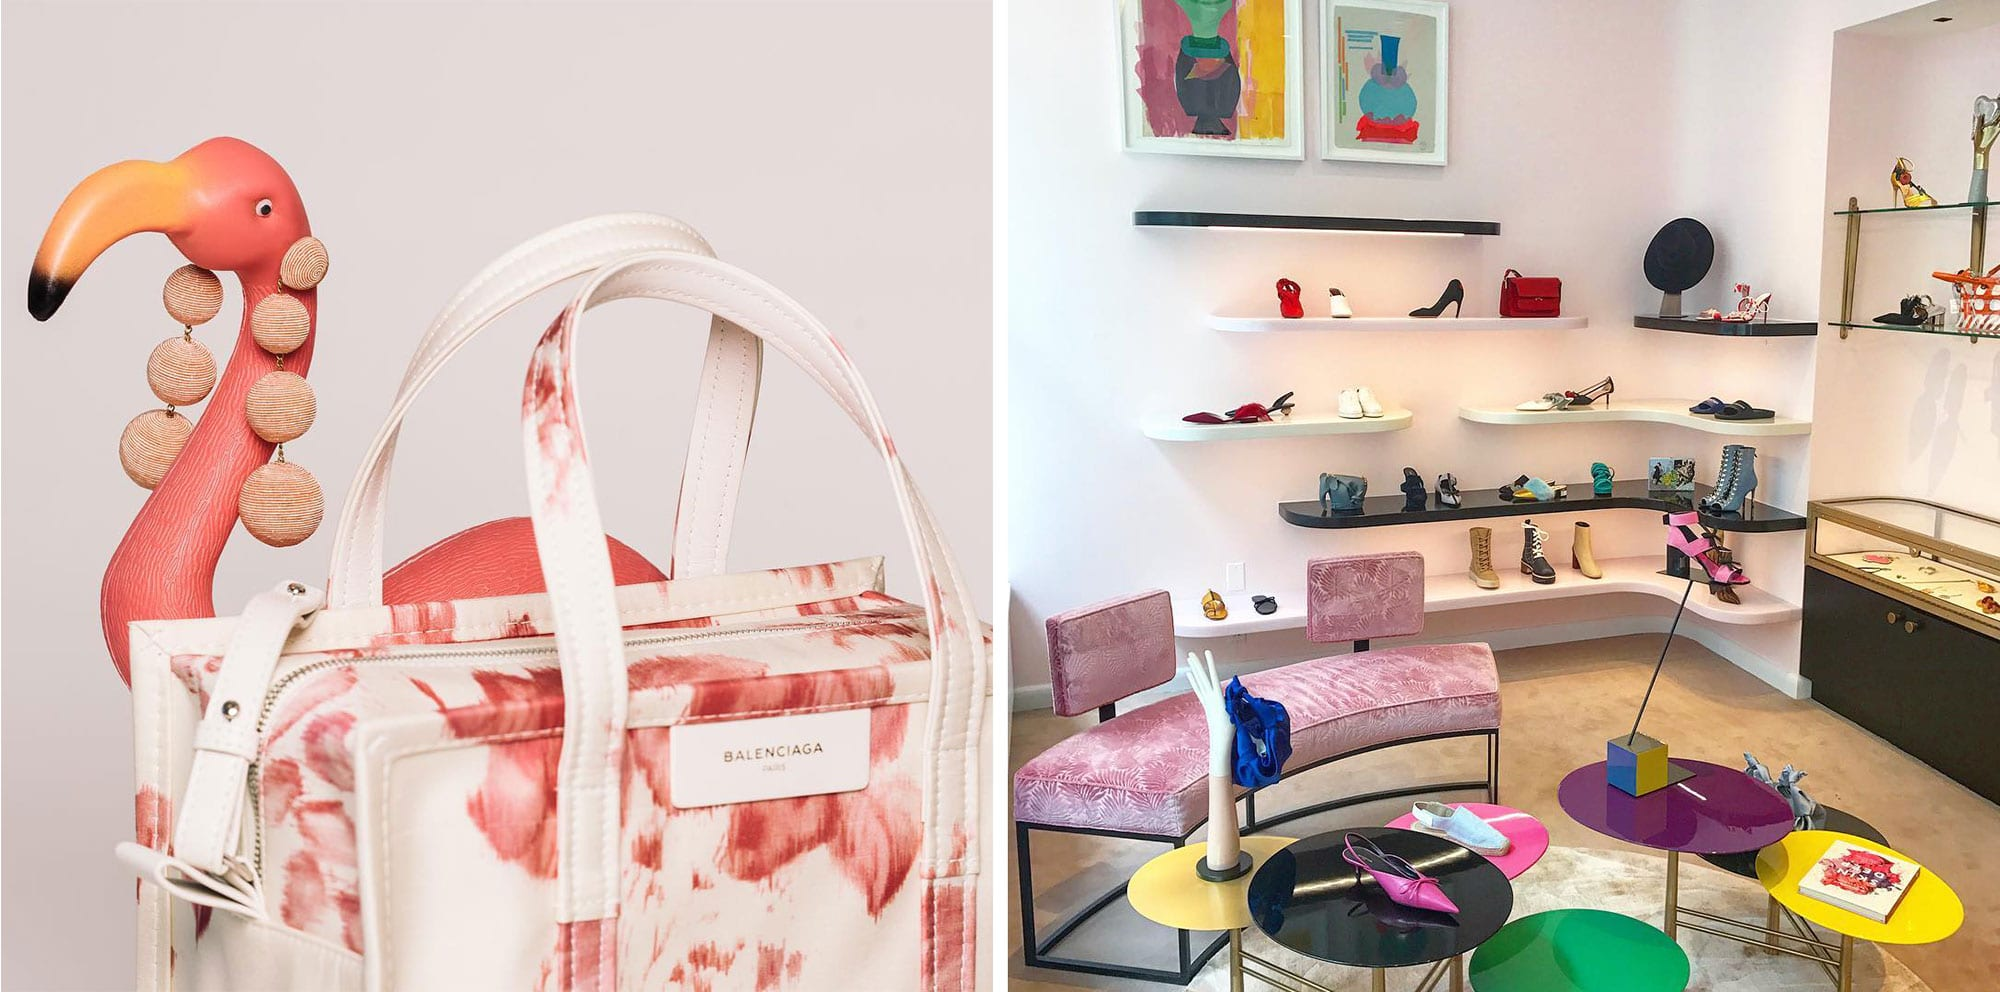 Novelty bag, plastic flamingo and store with shoes and small tables